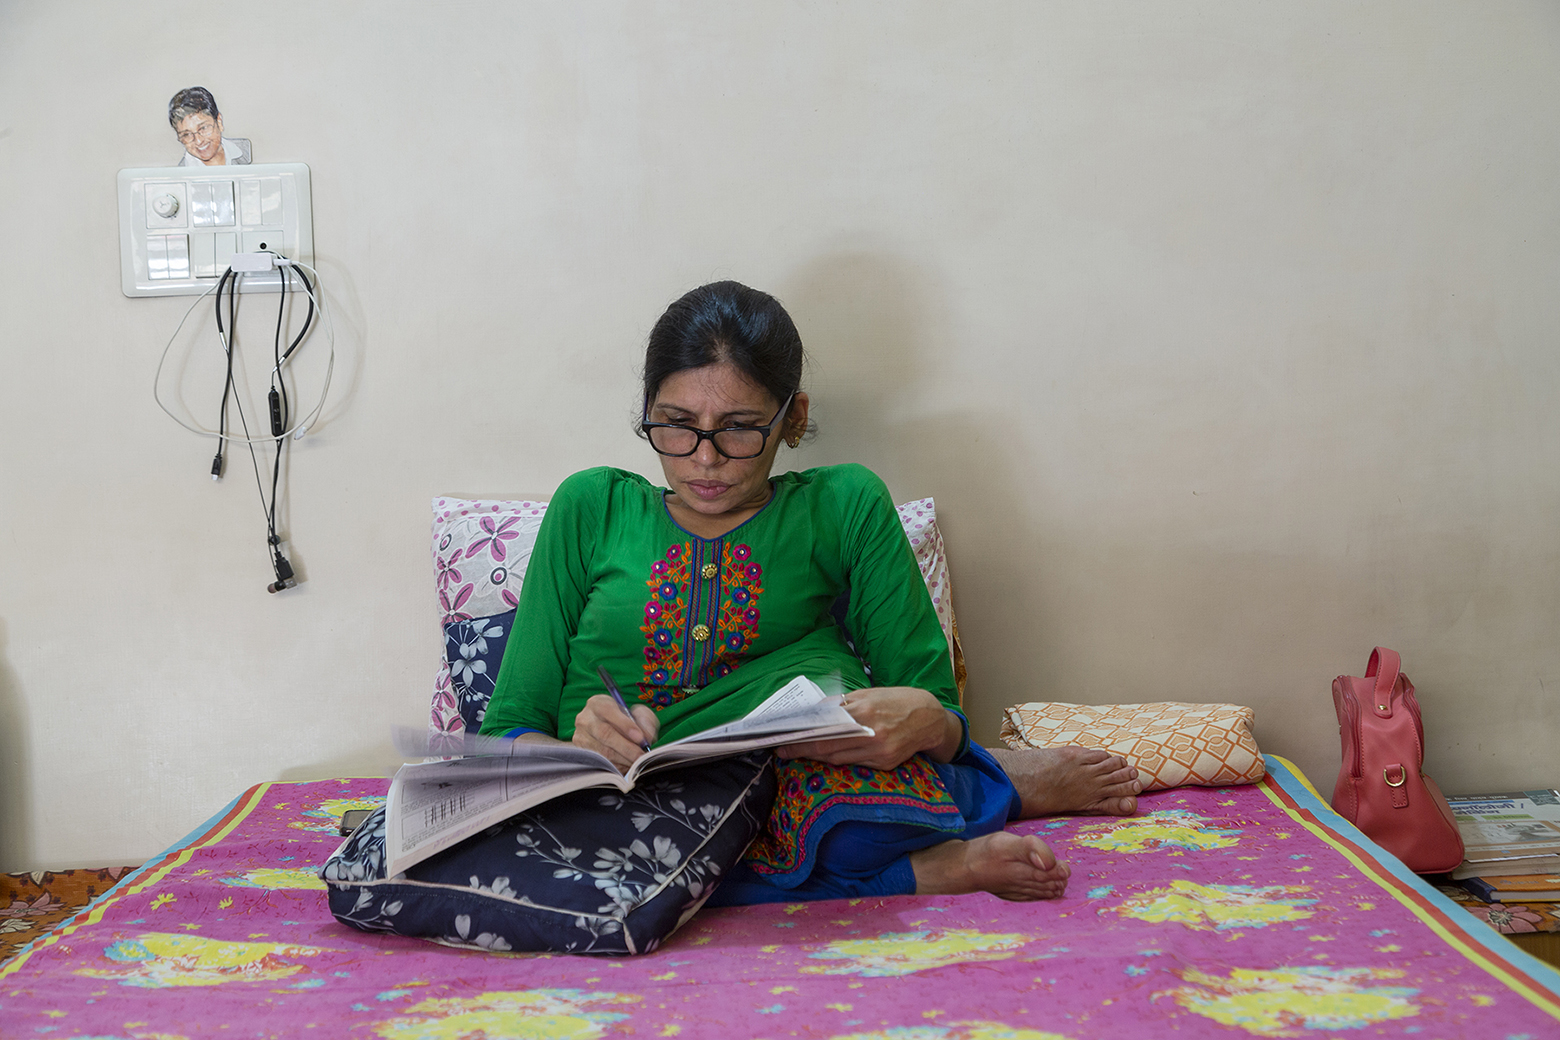 Kavita is sitting up in bed, leaning against a pillow, with legs crossed. She wears a parrot-green kameez with embroidery on the front, and a dark blue salwar. She is writing in a large book resting on her lap. High up on the bare wall, to the left, is a switch panel. A cutout portrait photo of Kiran Bedi sticks out from behind the switch panel.